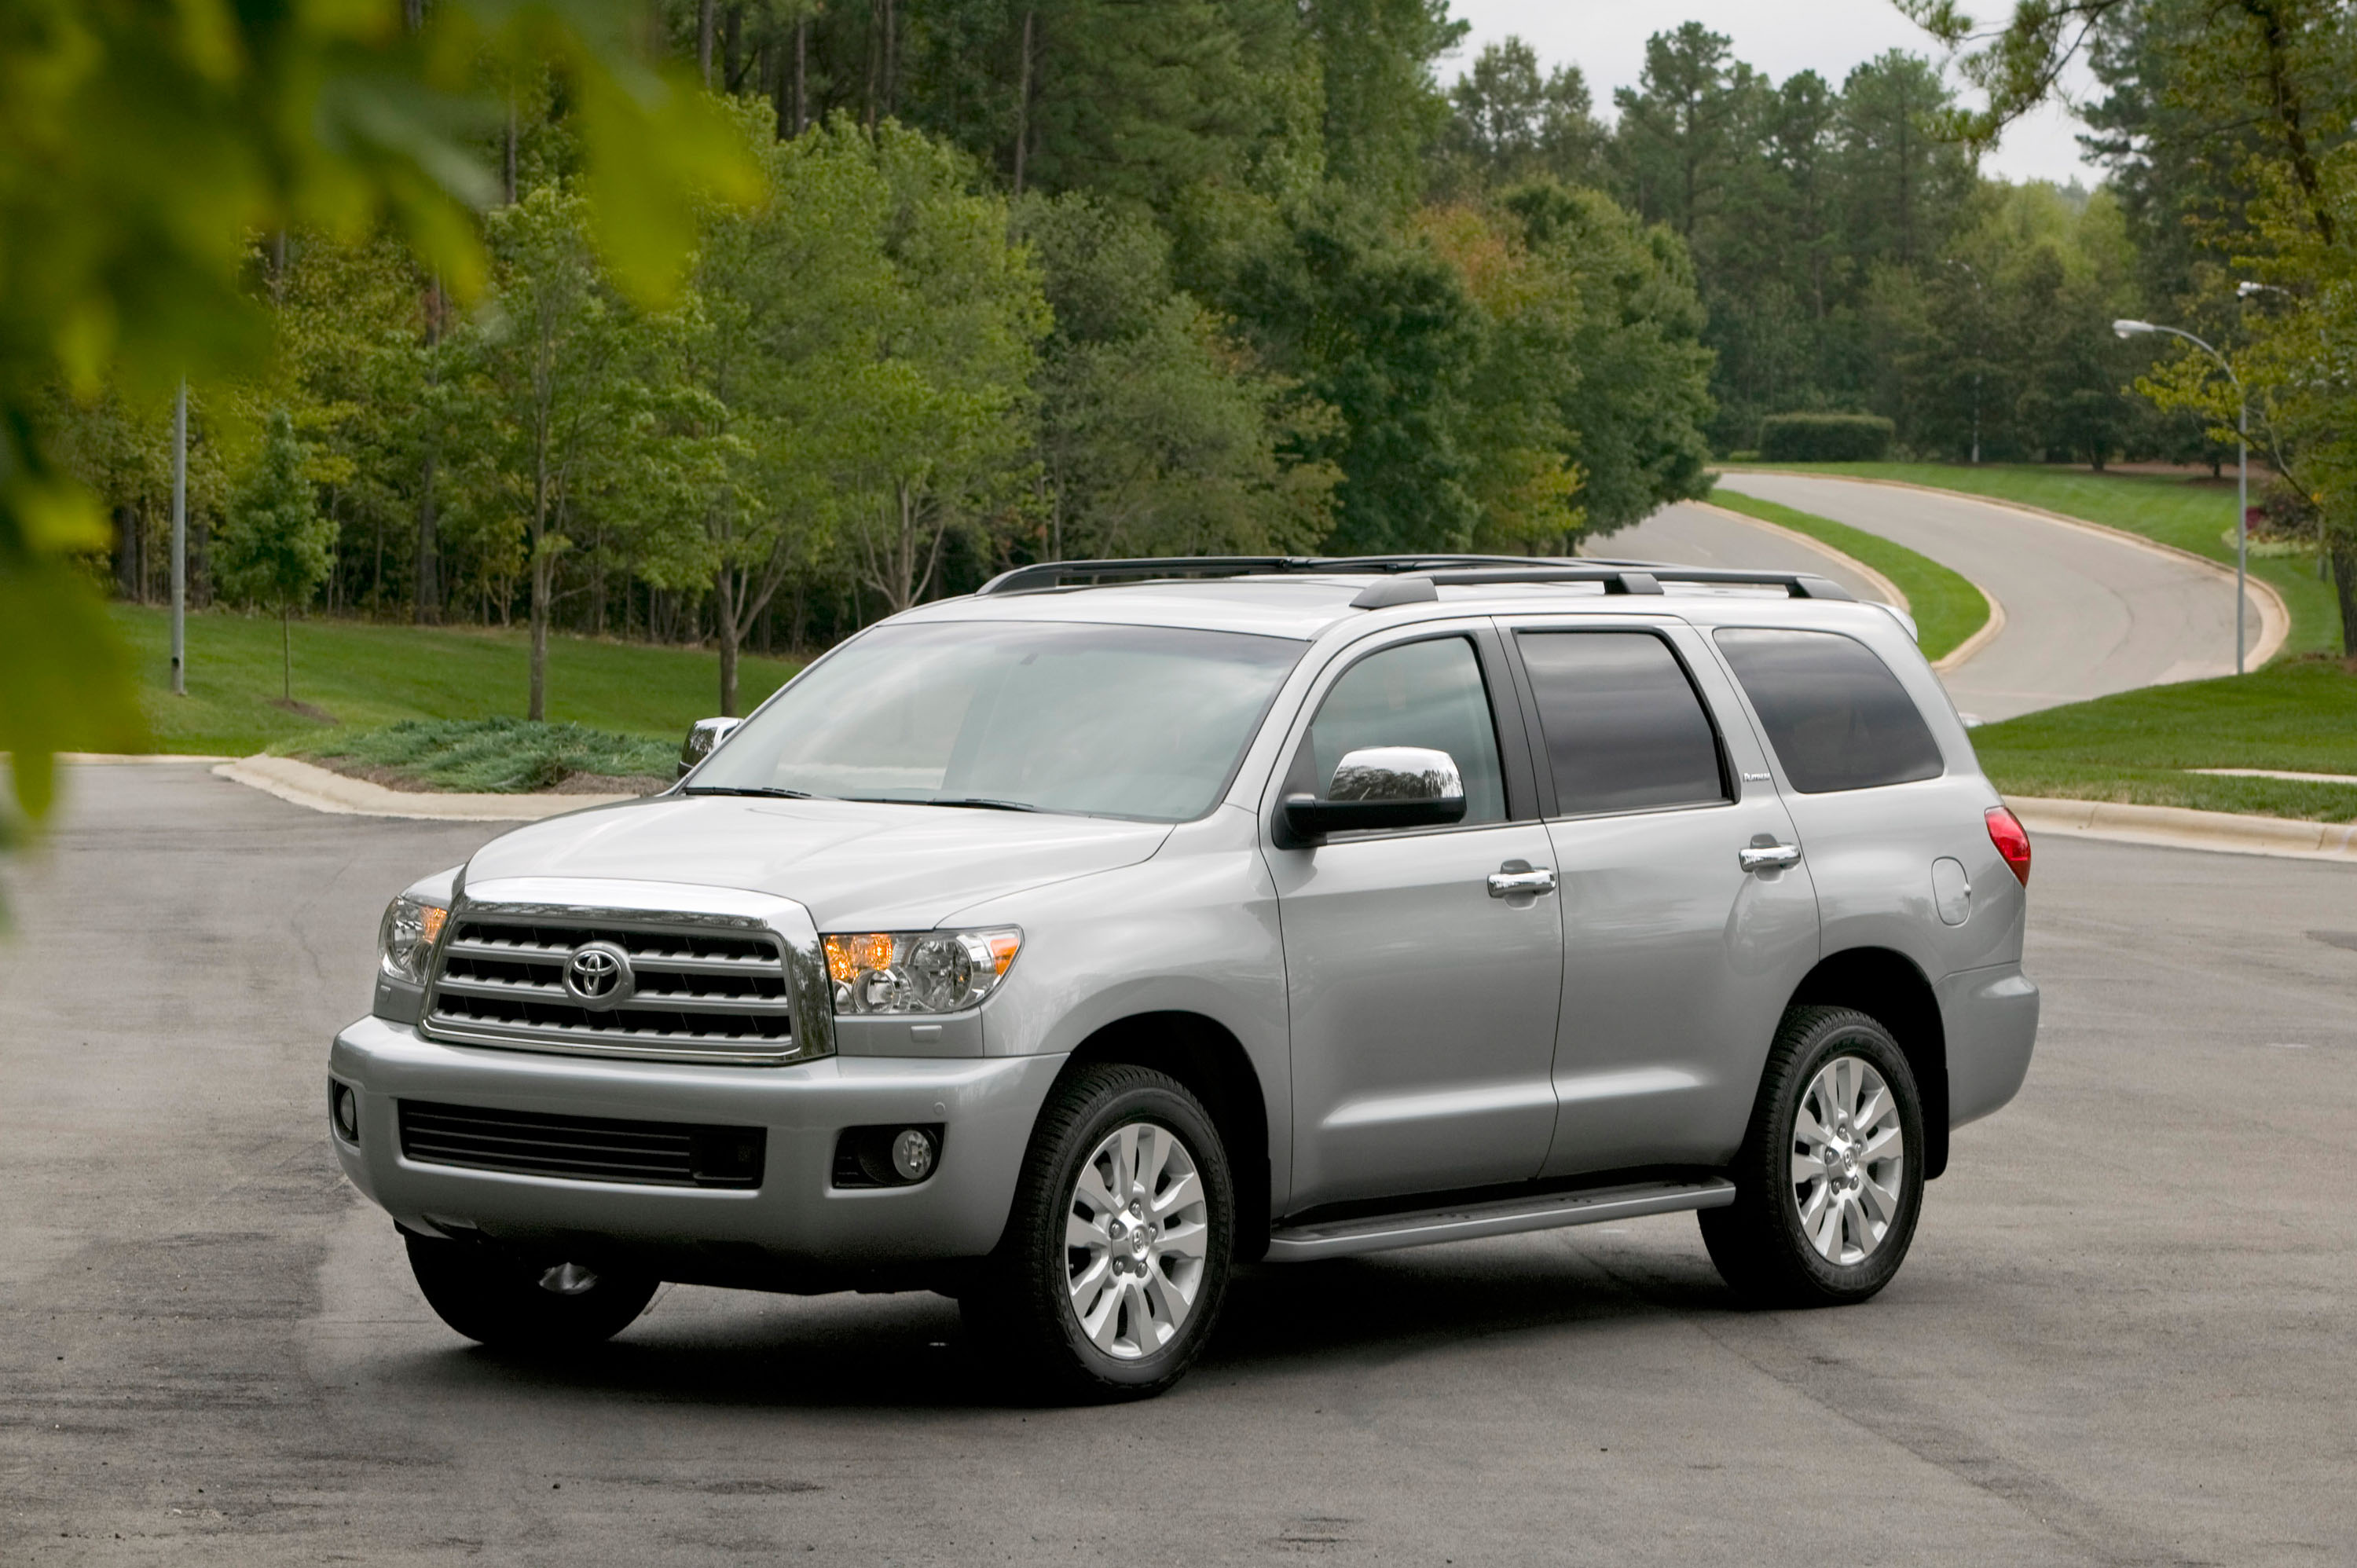 m minivan xle javier awd wheels premium used sienna on new car sequoia reviews toyota by sale savage for